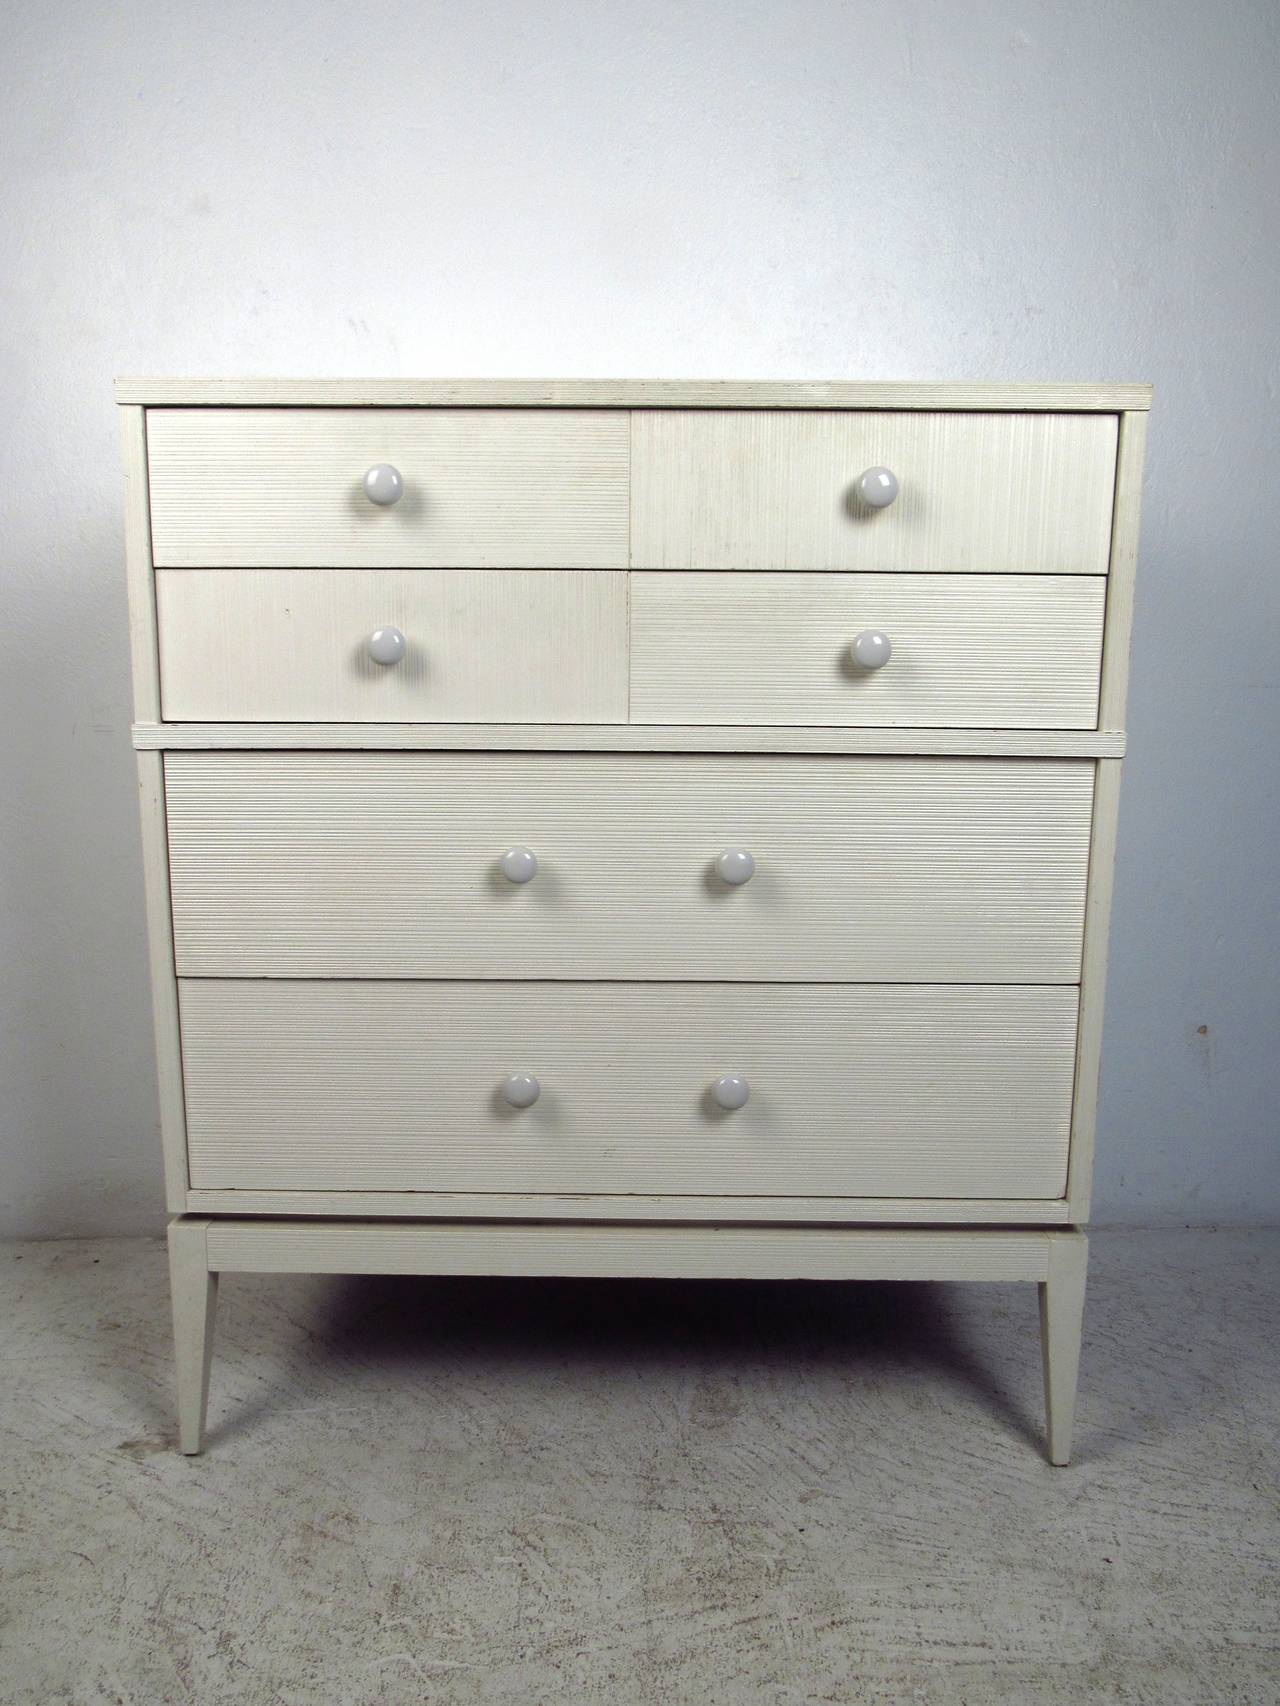 white fourdrawer high boy dresser by kroehler furniture 2 - Kroehler Furniture